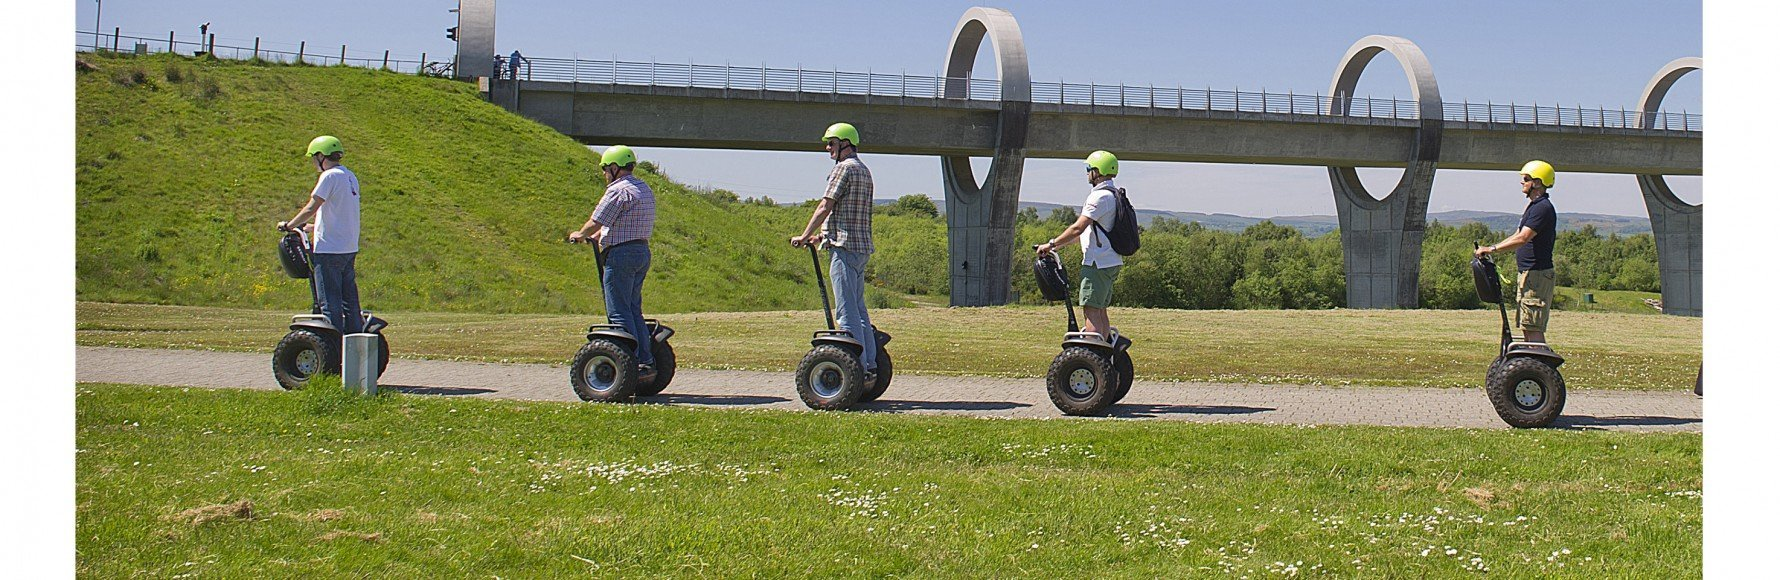 Segway tour at the Falkirk Wheel